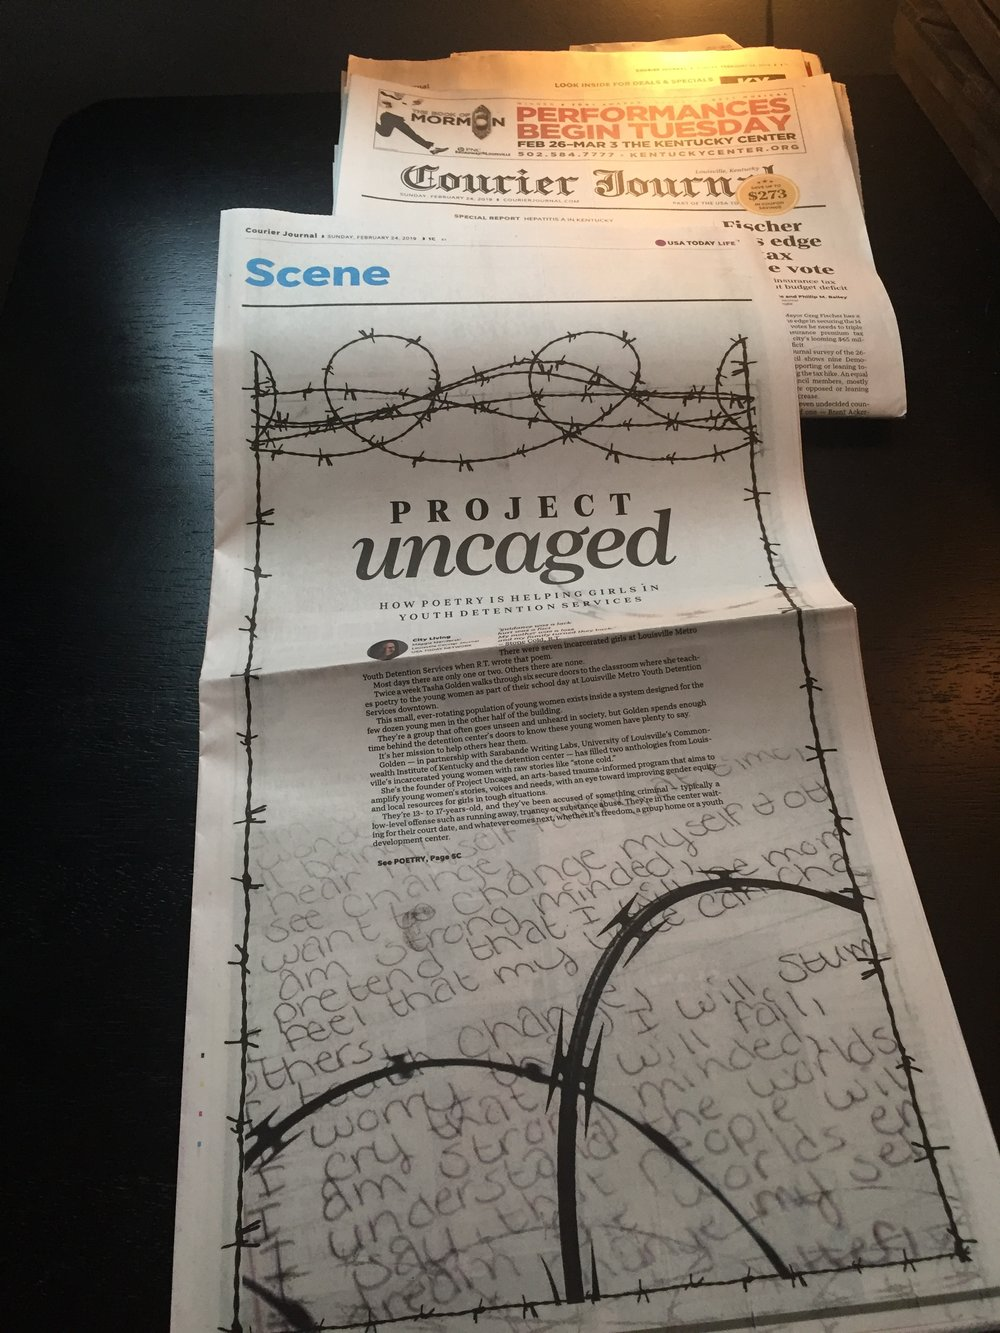 Maggie Menderski of the Courier Journal shadowed Project Uncaged for 3 months, and  wrote about it in this Sunday feature story .